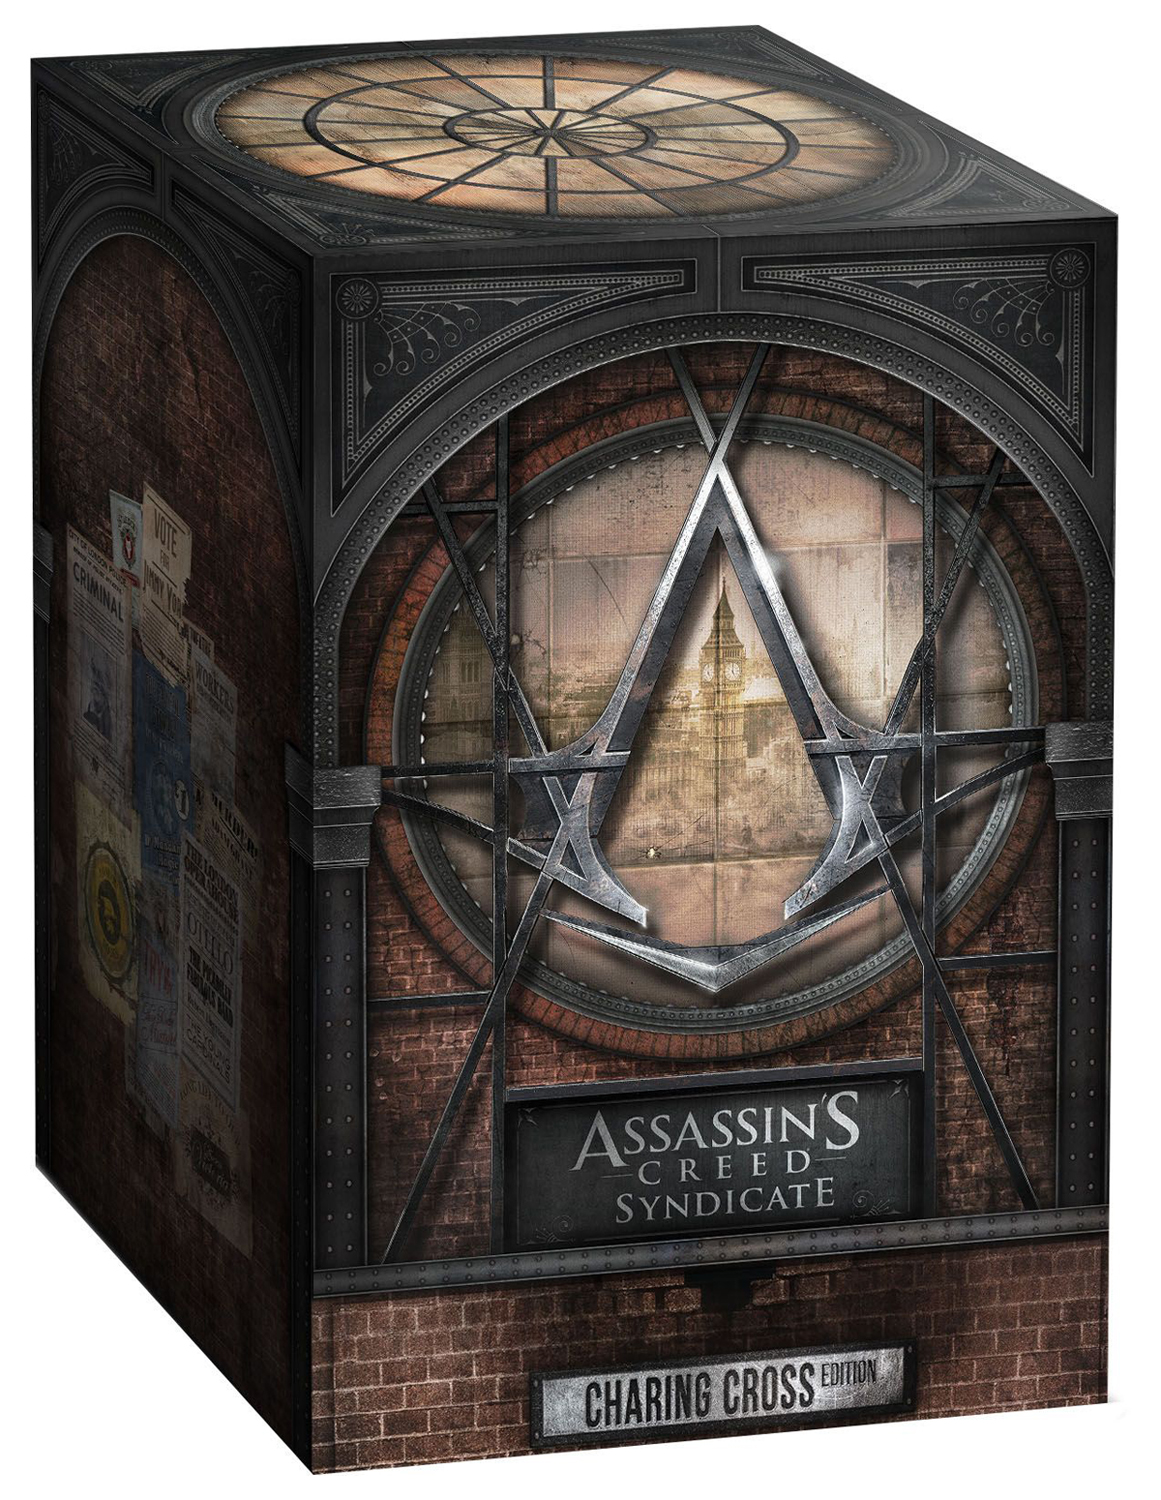 Assassins Creed - Syndicate - Charing Cross Edition PC